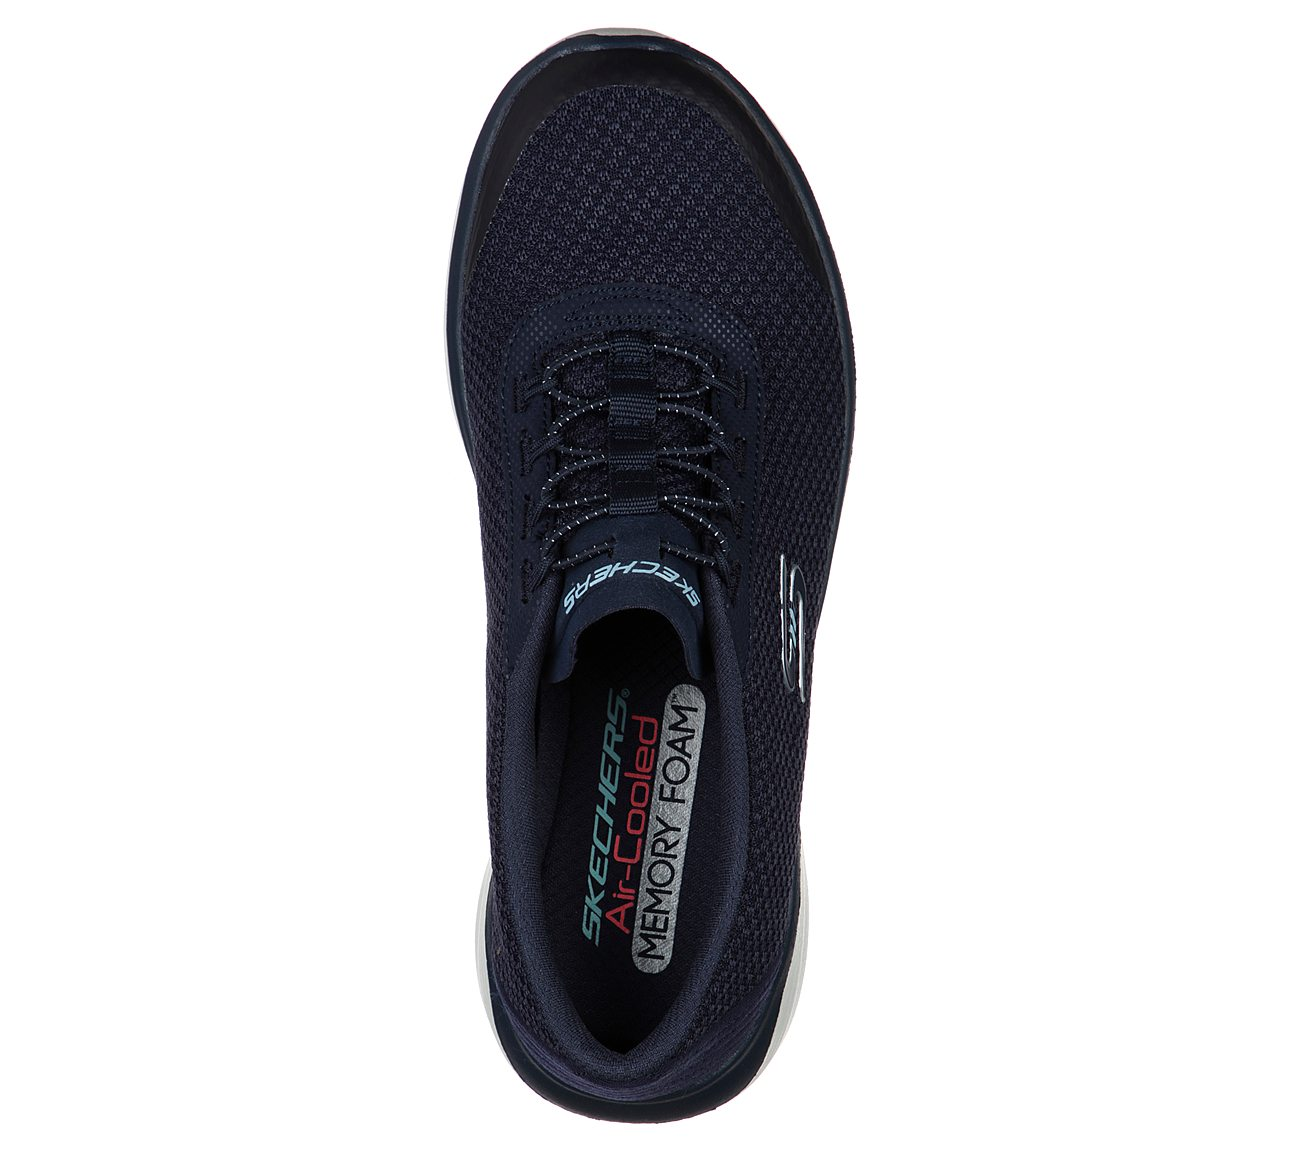 SKECHERS Envy - Good Thinking Bungee